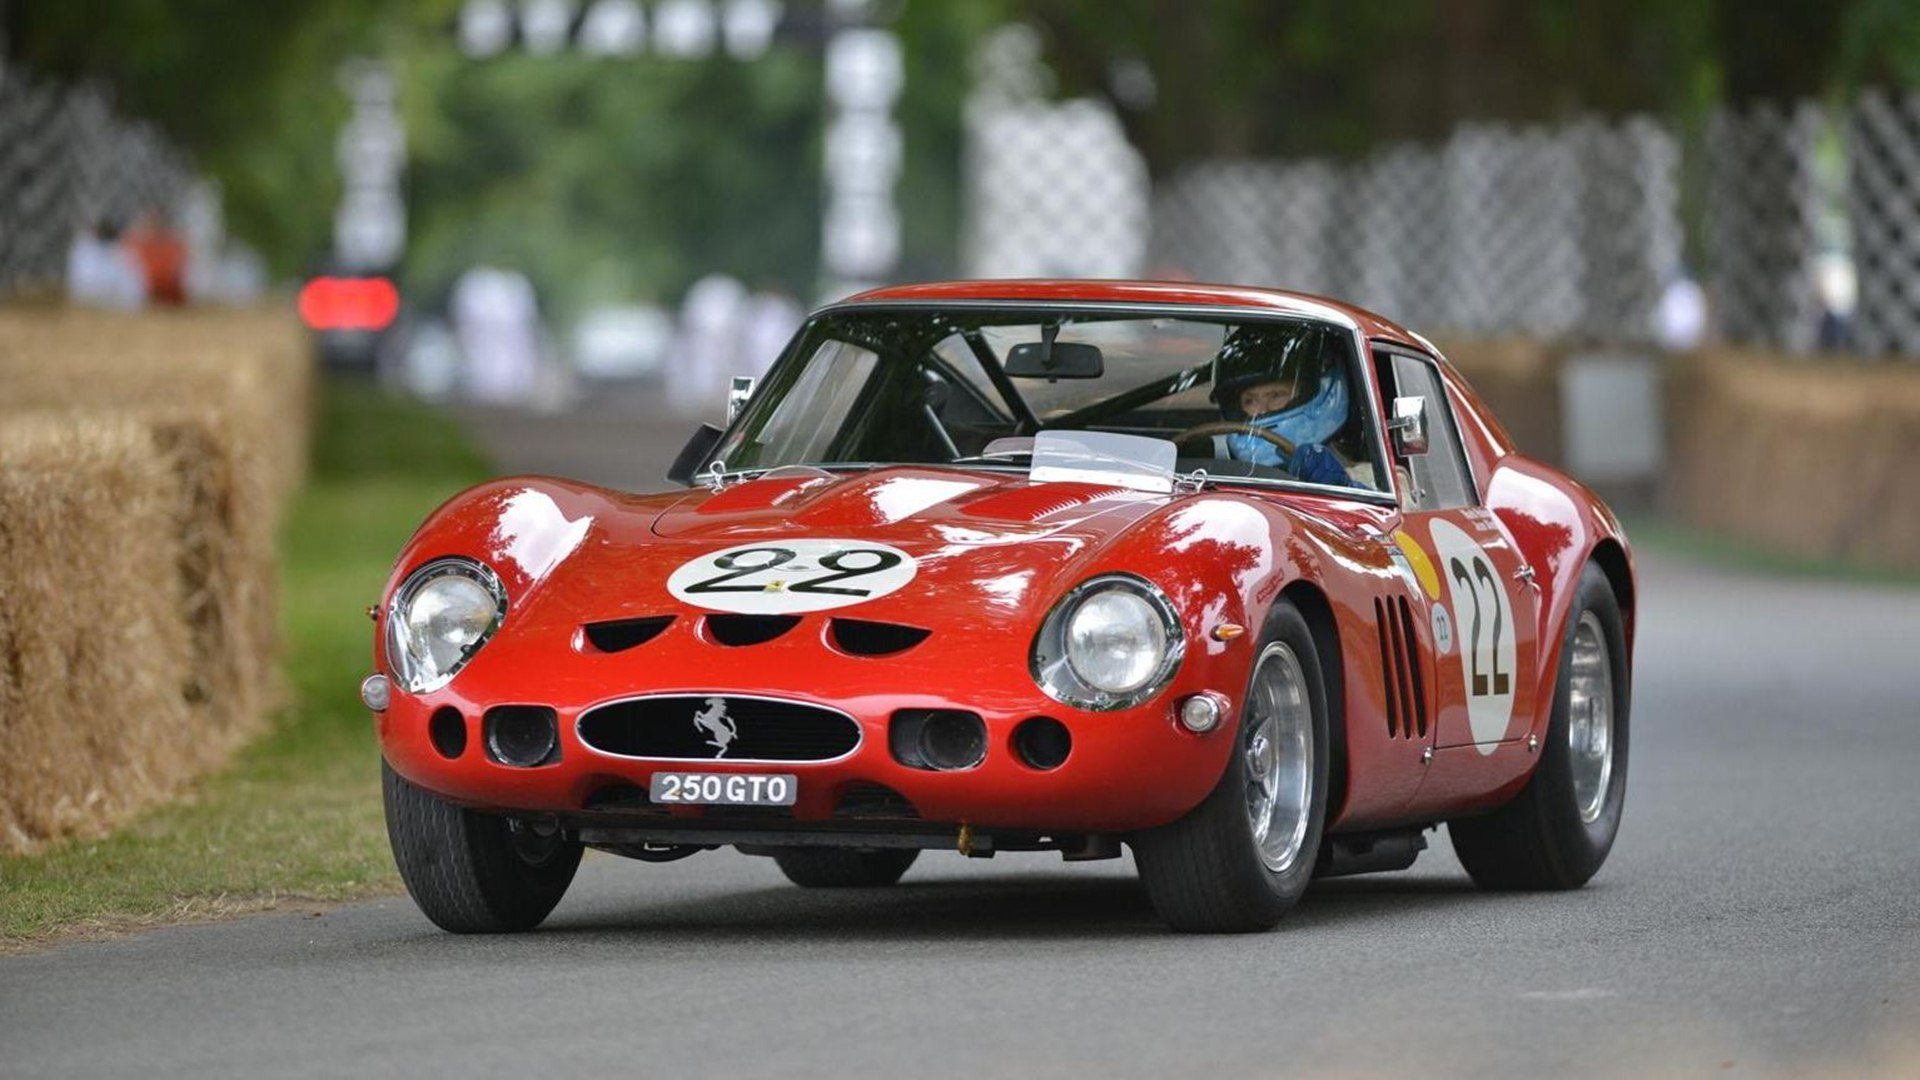 Ferrari 250 Gto Wallpaper 07 1920x1080